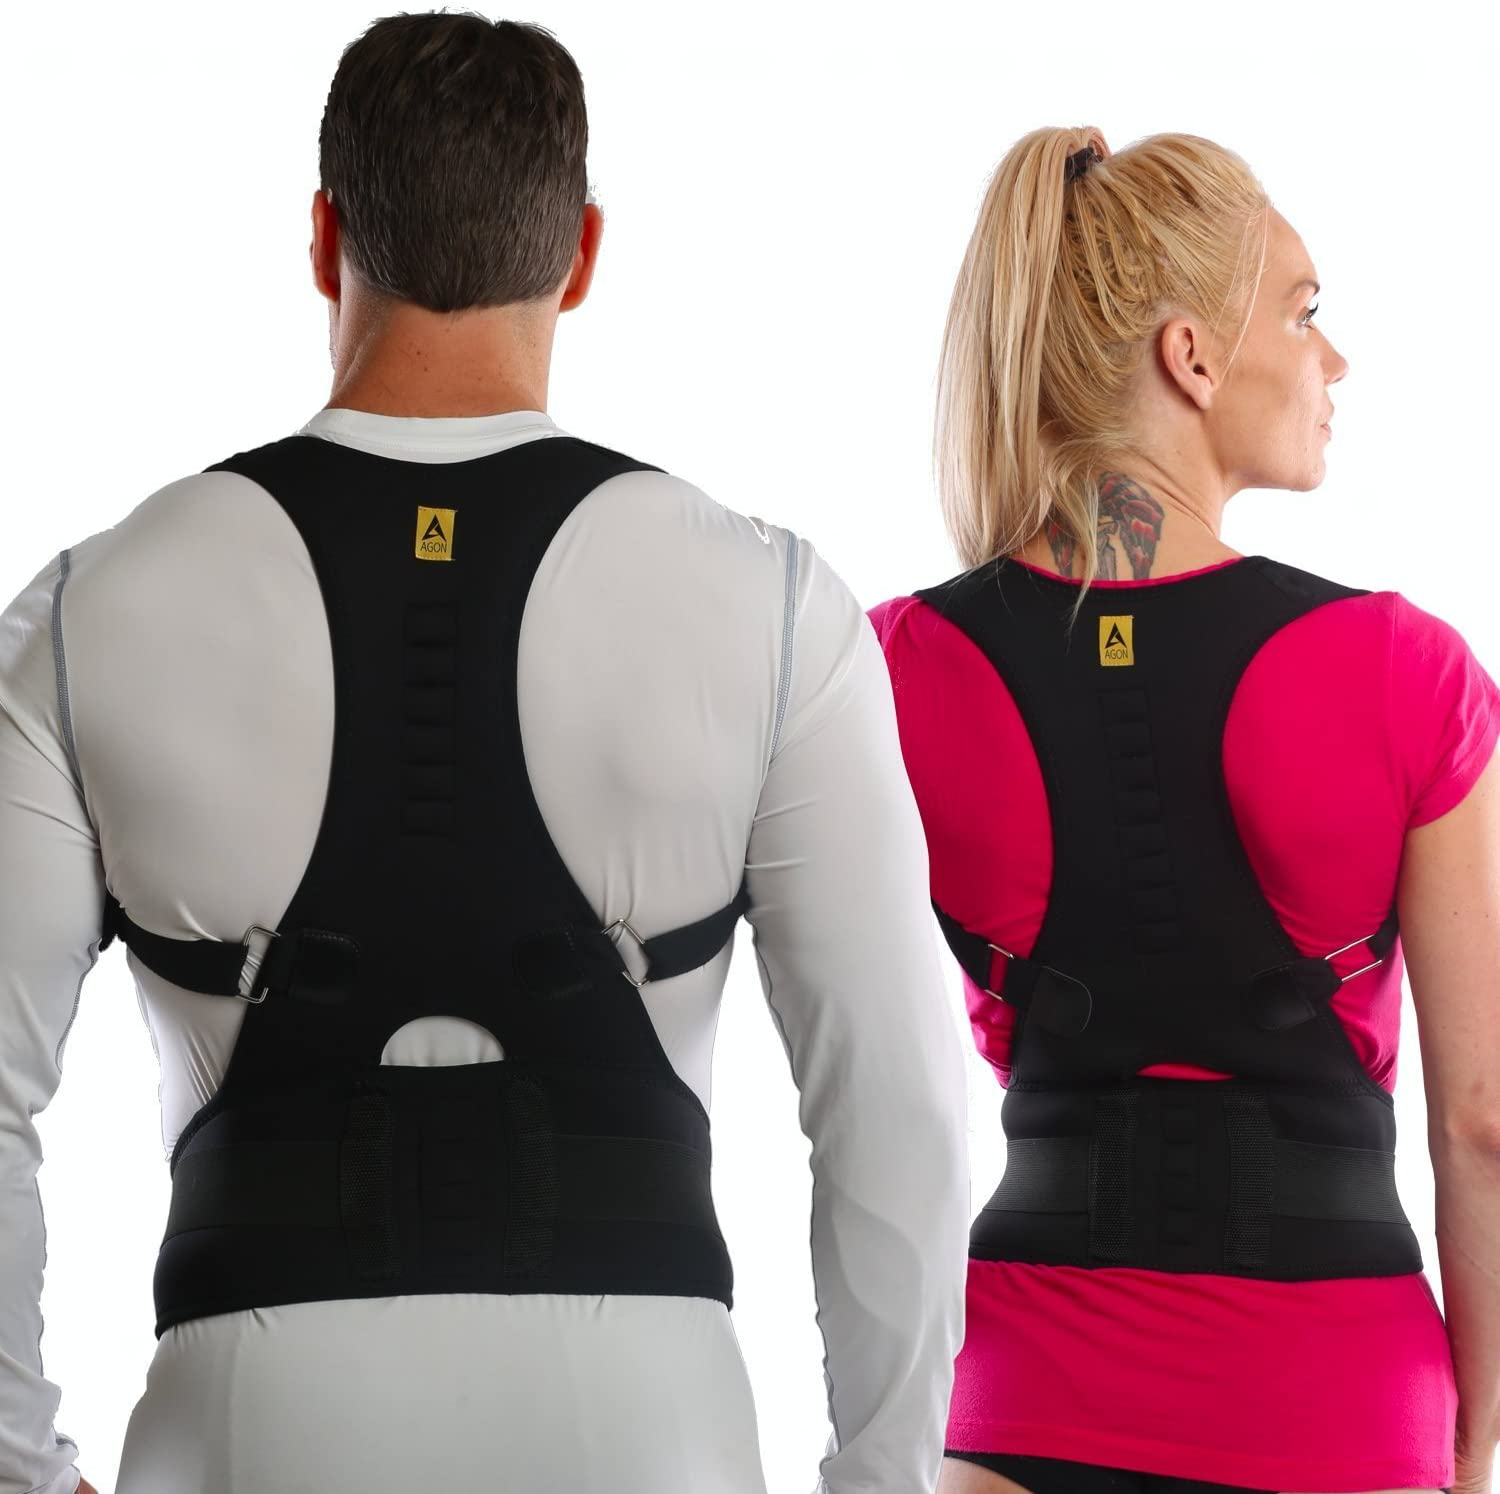 Agon® Thoracic Back Brace Posture Corrector - Magnetic Support for Back Neck Shoulder Upper Back Pain Relief Perfect Product for Cervical Spine Fully Adjustable with Magnets (Small/Medium)